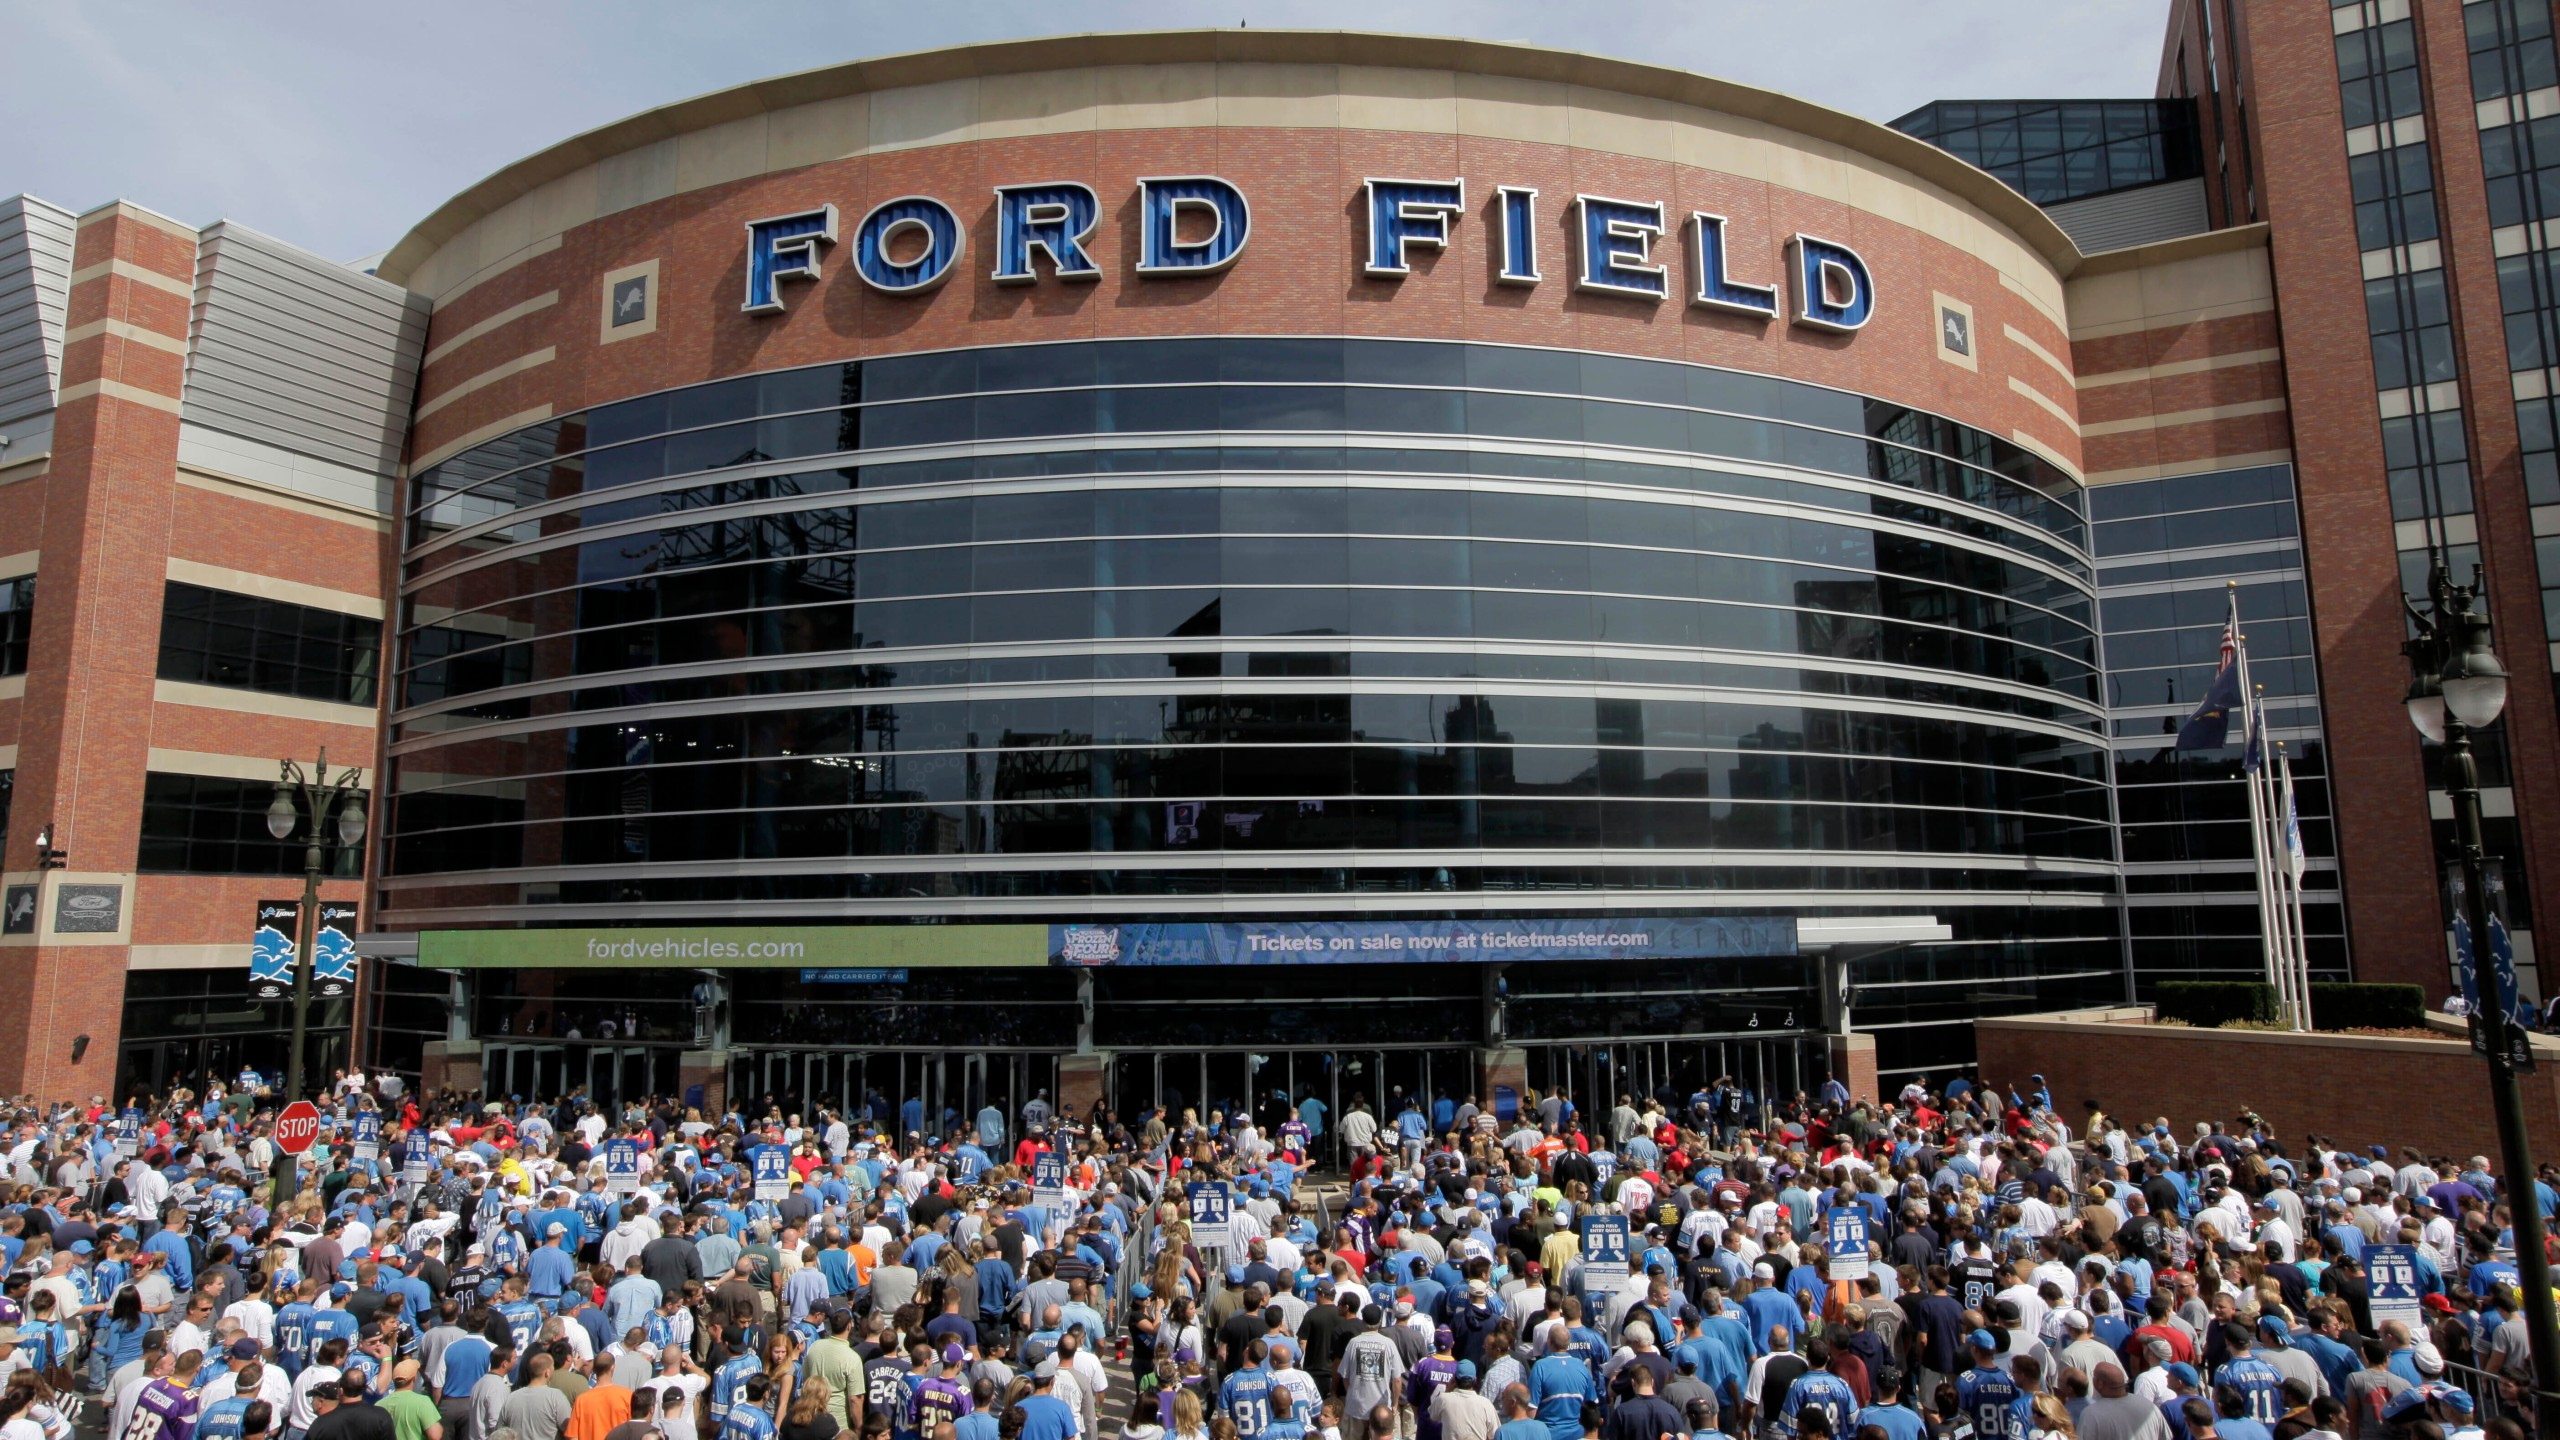 Ford Field